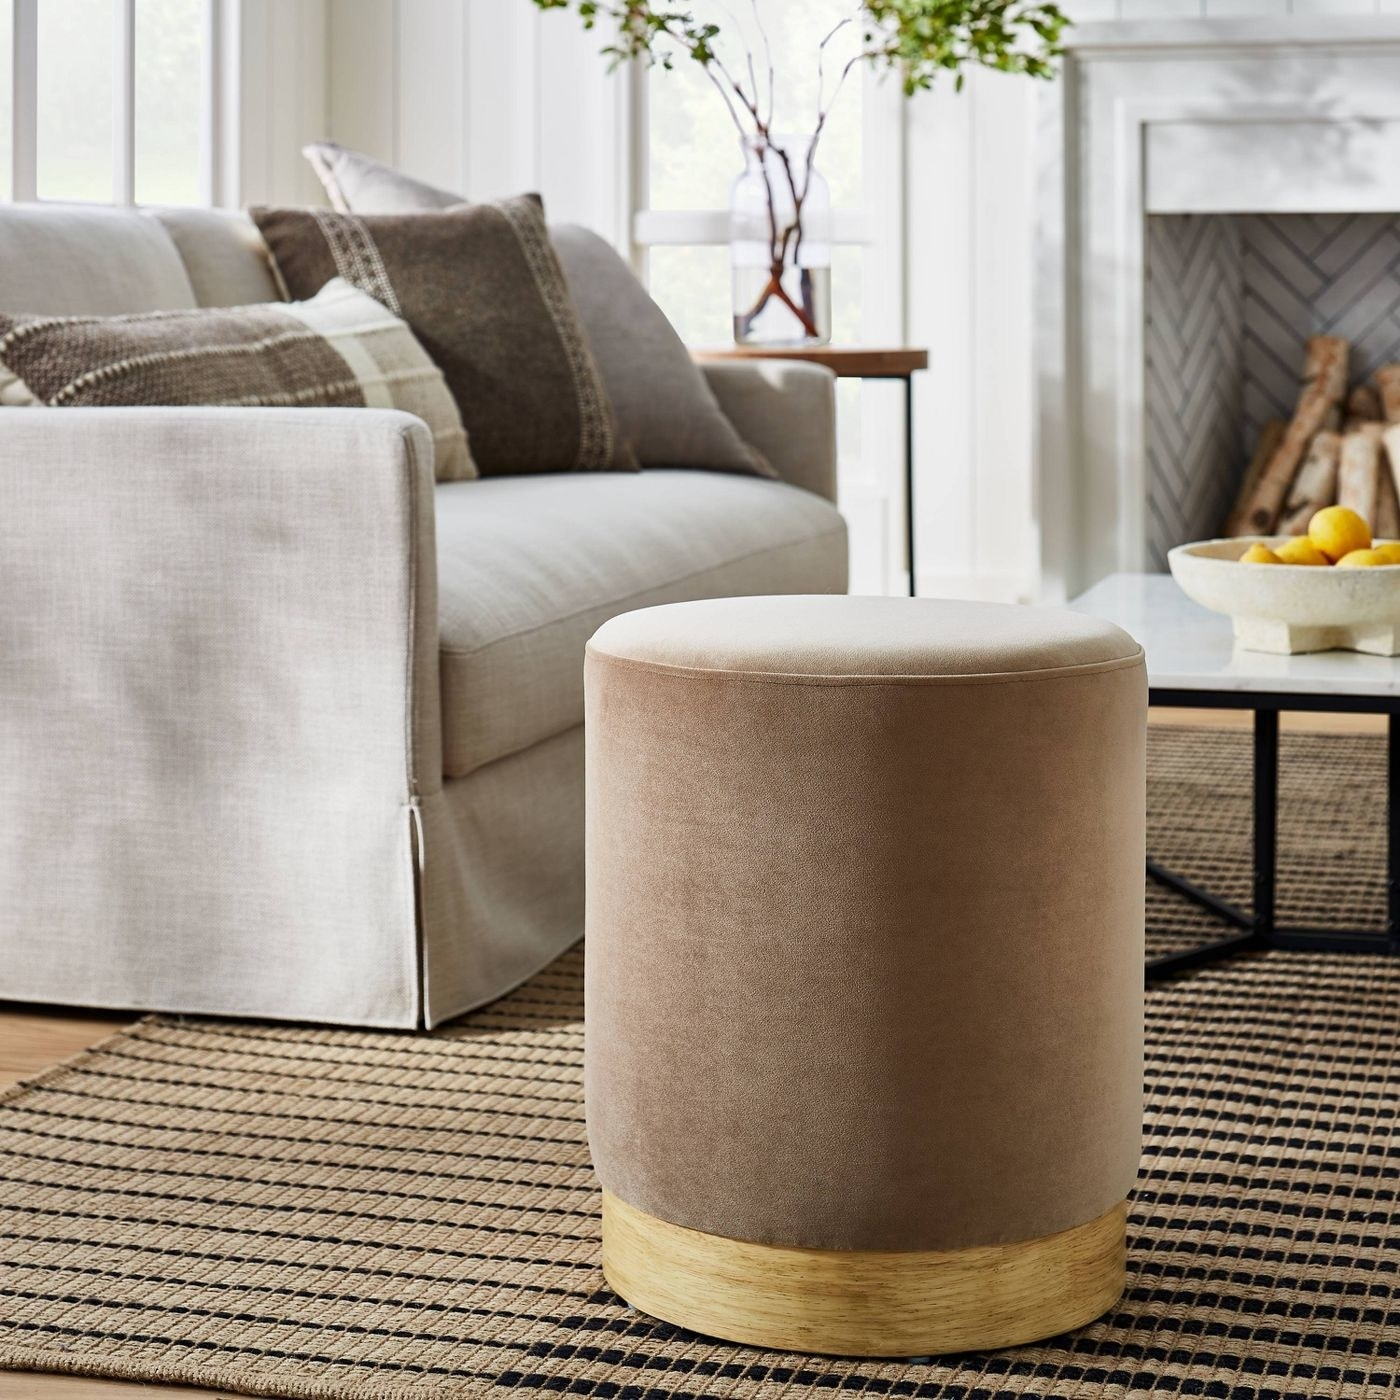 a tan velvet cylindrical ottoman with a wooden base